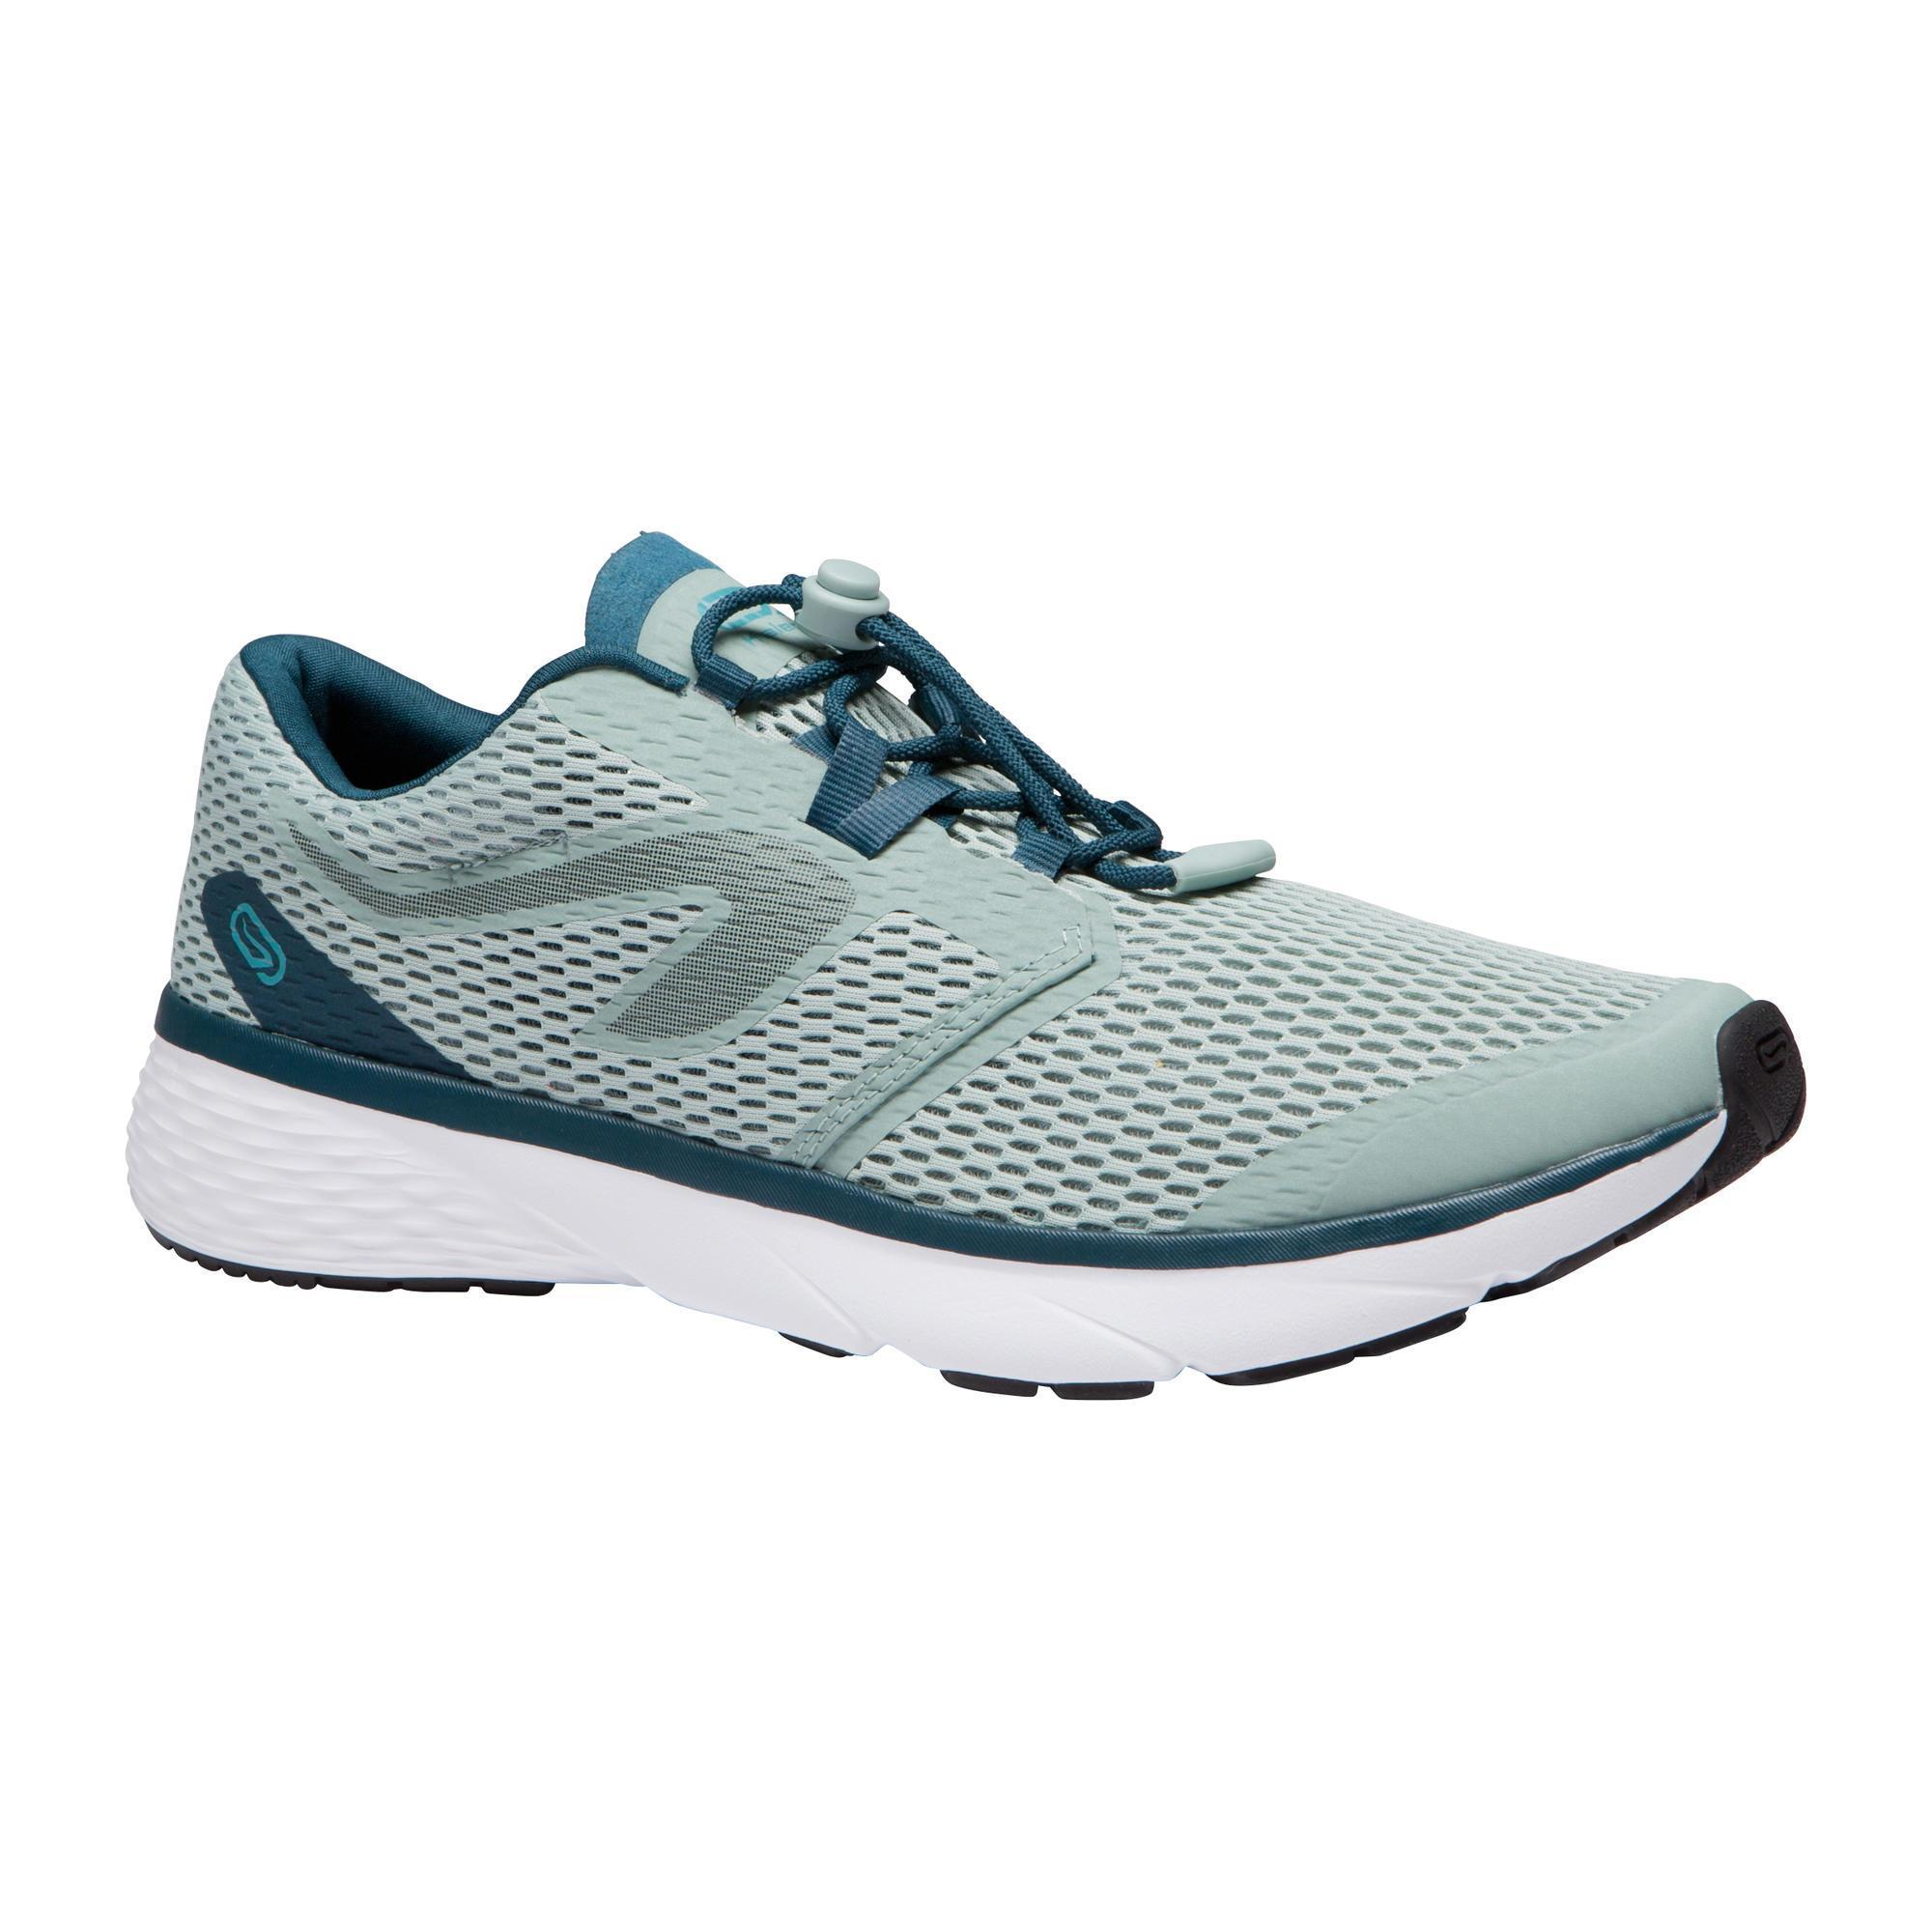 Laufschuhe Run Support Breathe Herren grün